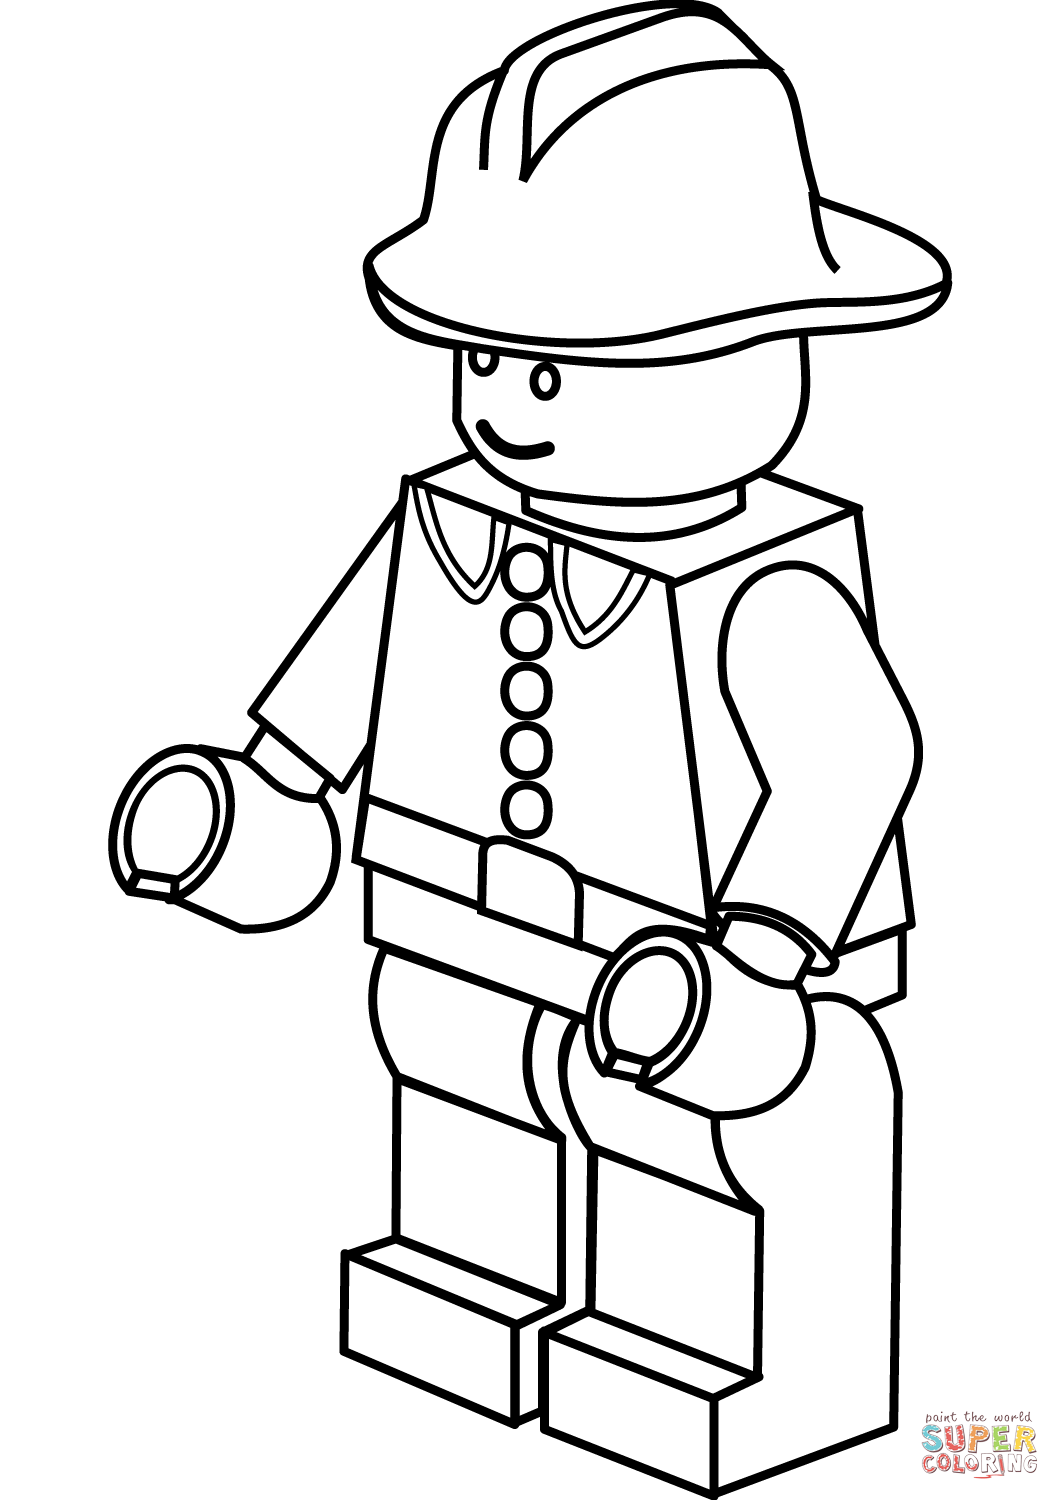 Fireman drawing at getdrawings free for personal use fireman 1060x1500 free printable fireman coloring pages for toddler kids sam high maxwellsz